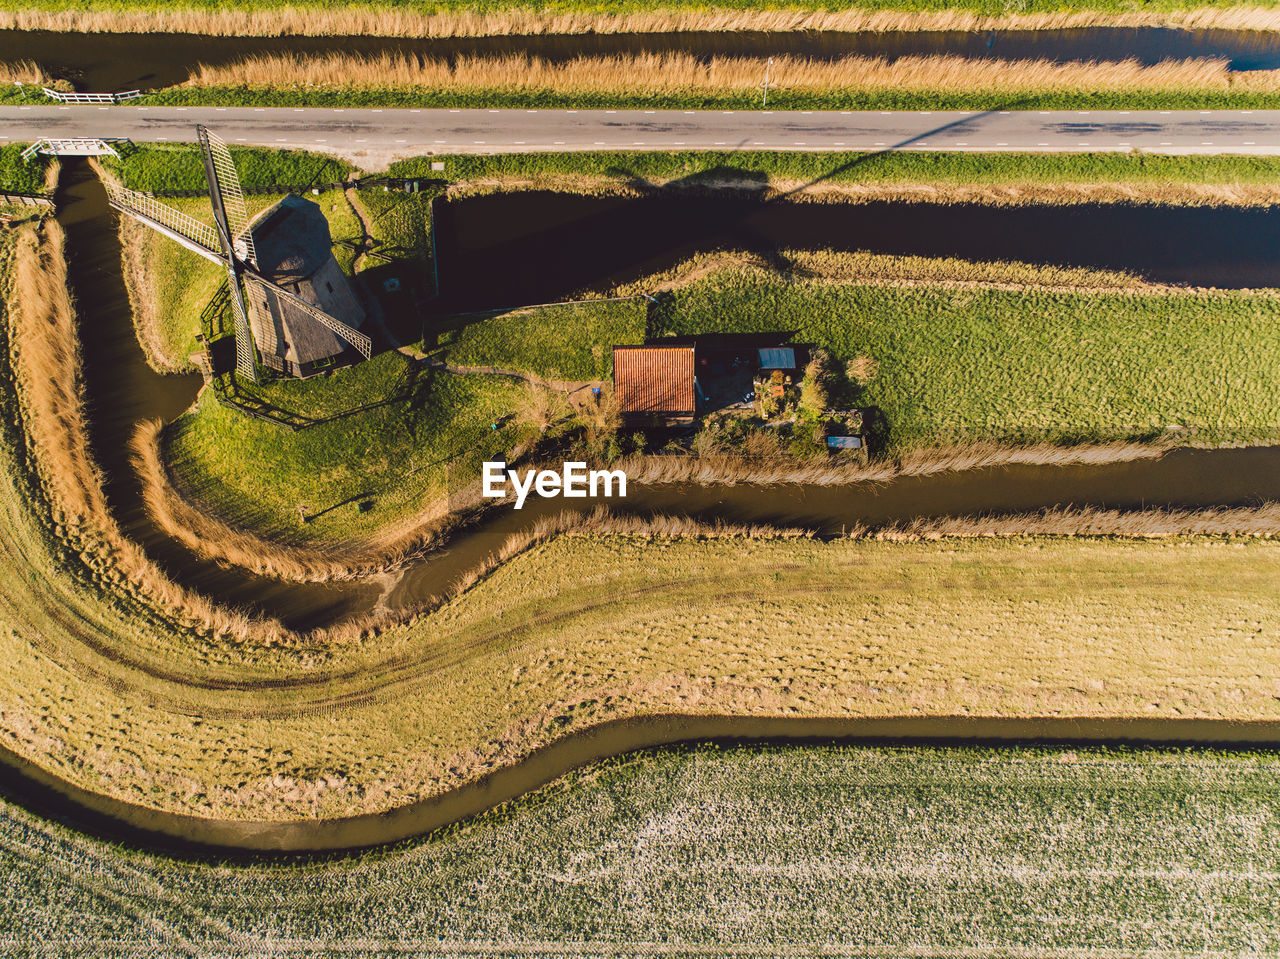 HIGH ANGLE VIEW OF AGRICULTURAL FARM